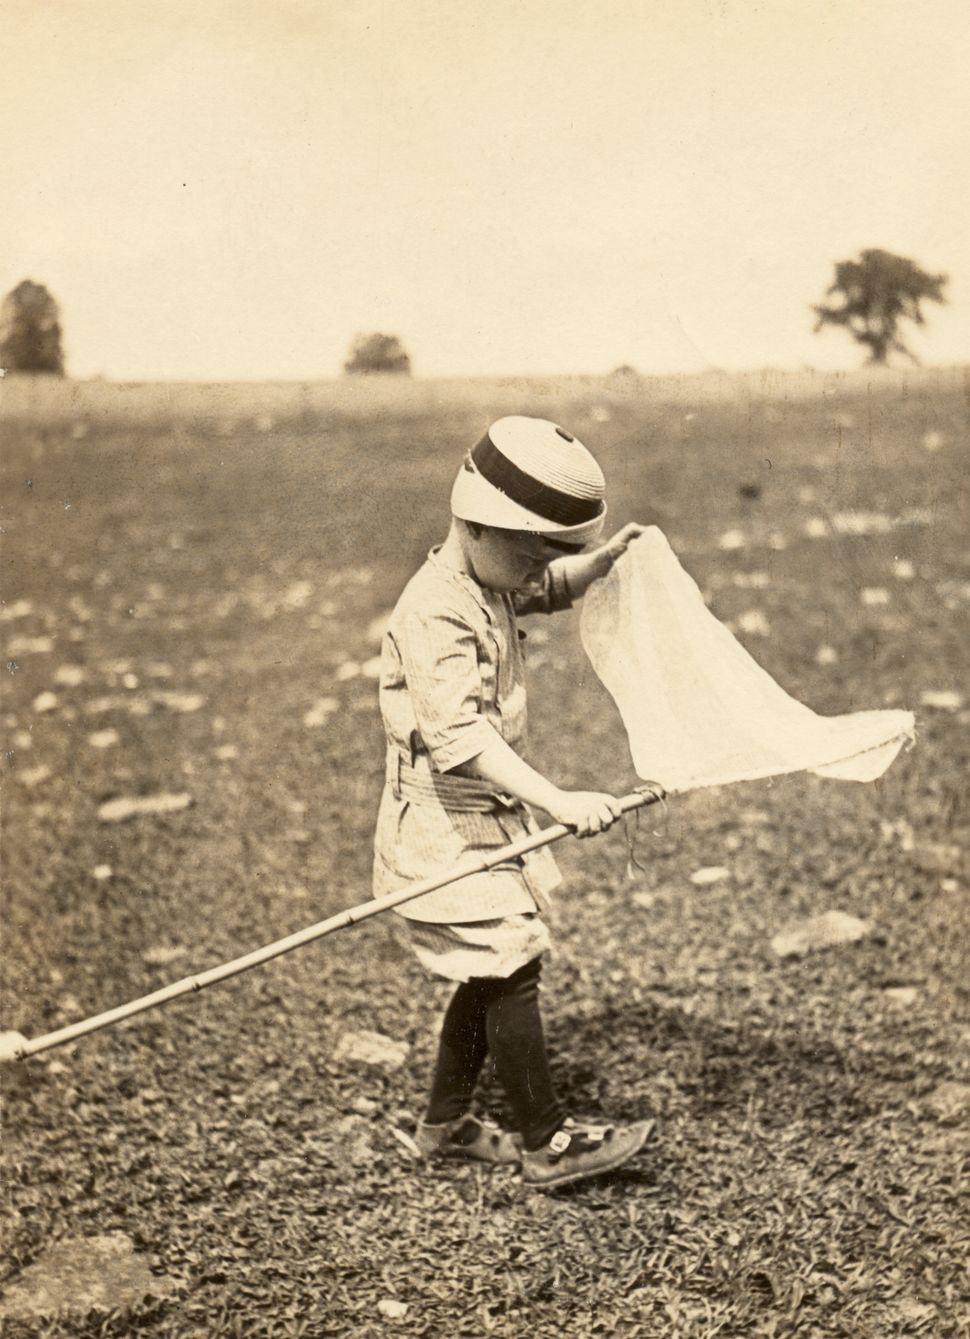 A young boy plays in a field with a butterfly net, Ulysses, Pennsylvania, 1913. (Photo by Vintage Images/Getty Images)